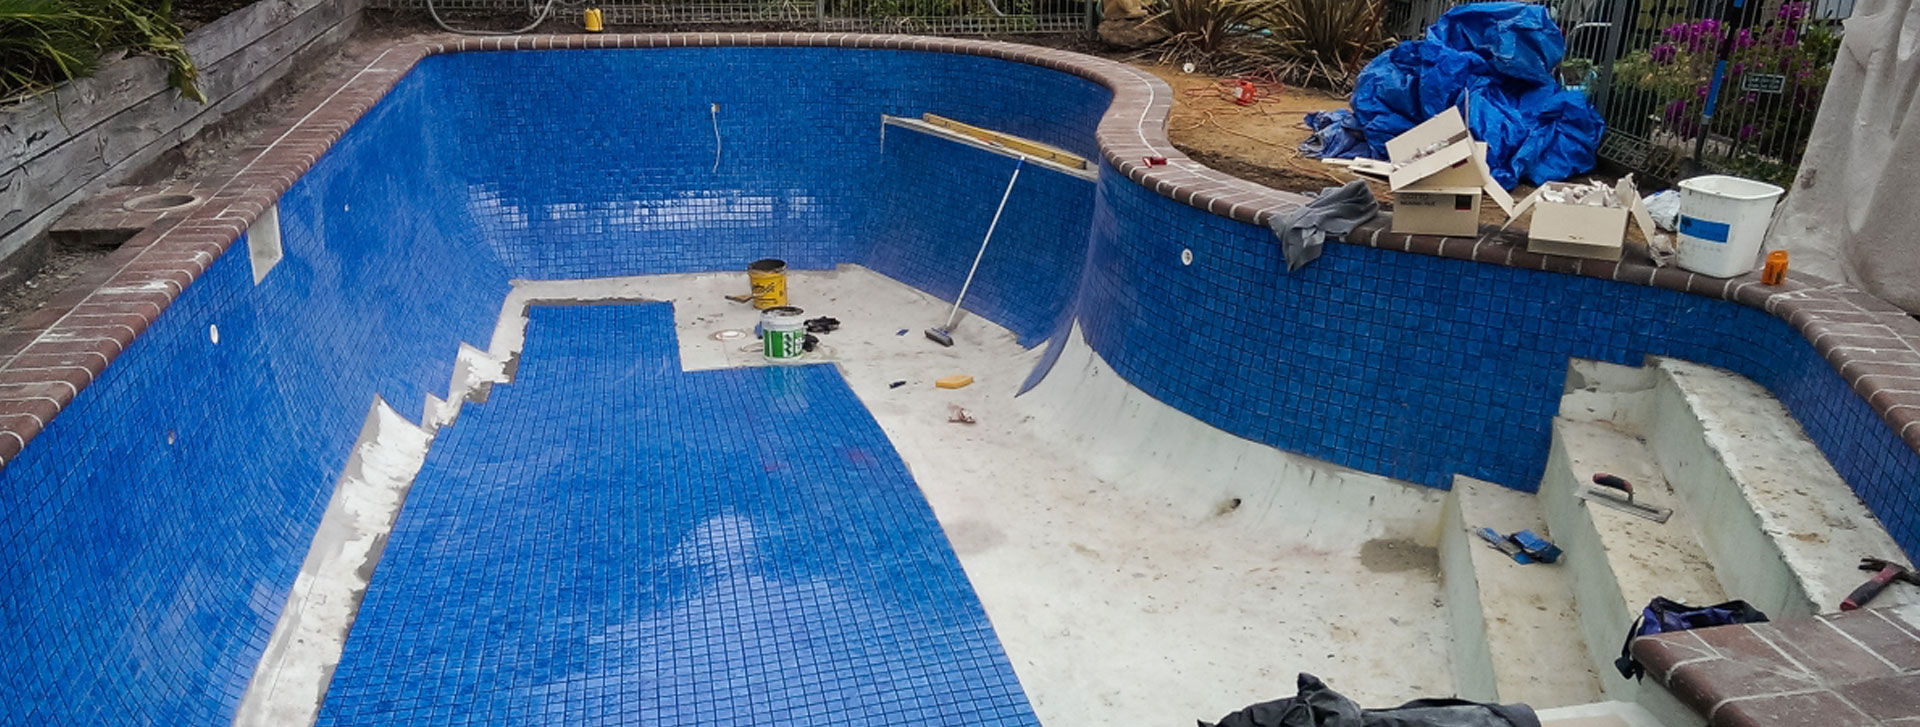 tiling a rendered swimming pool